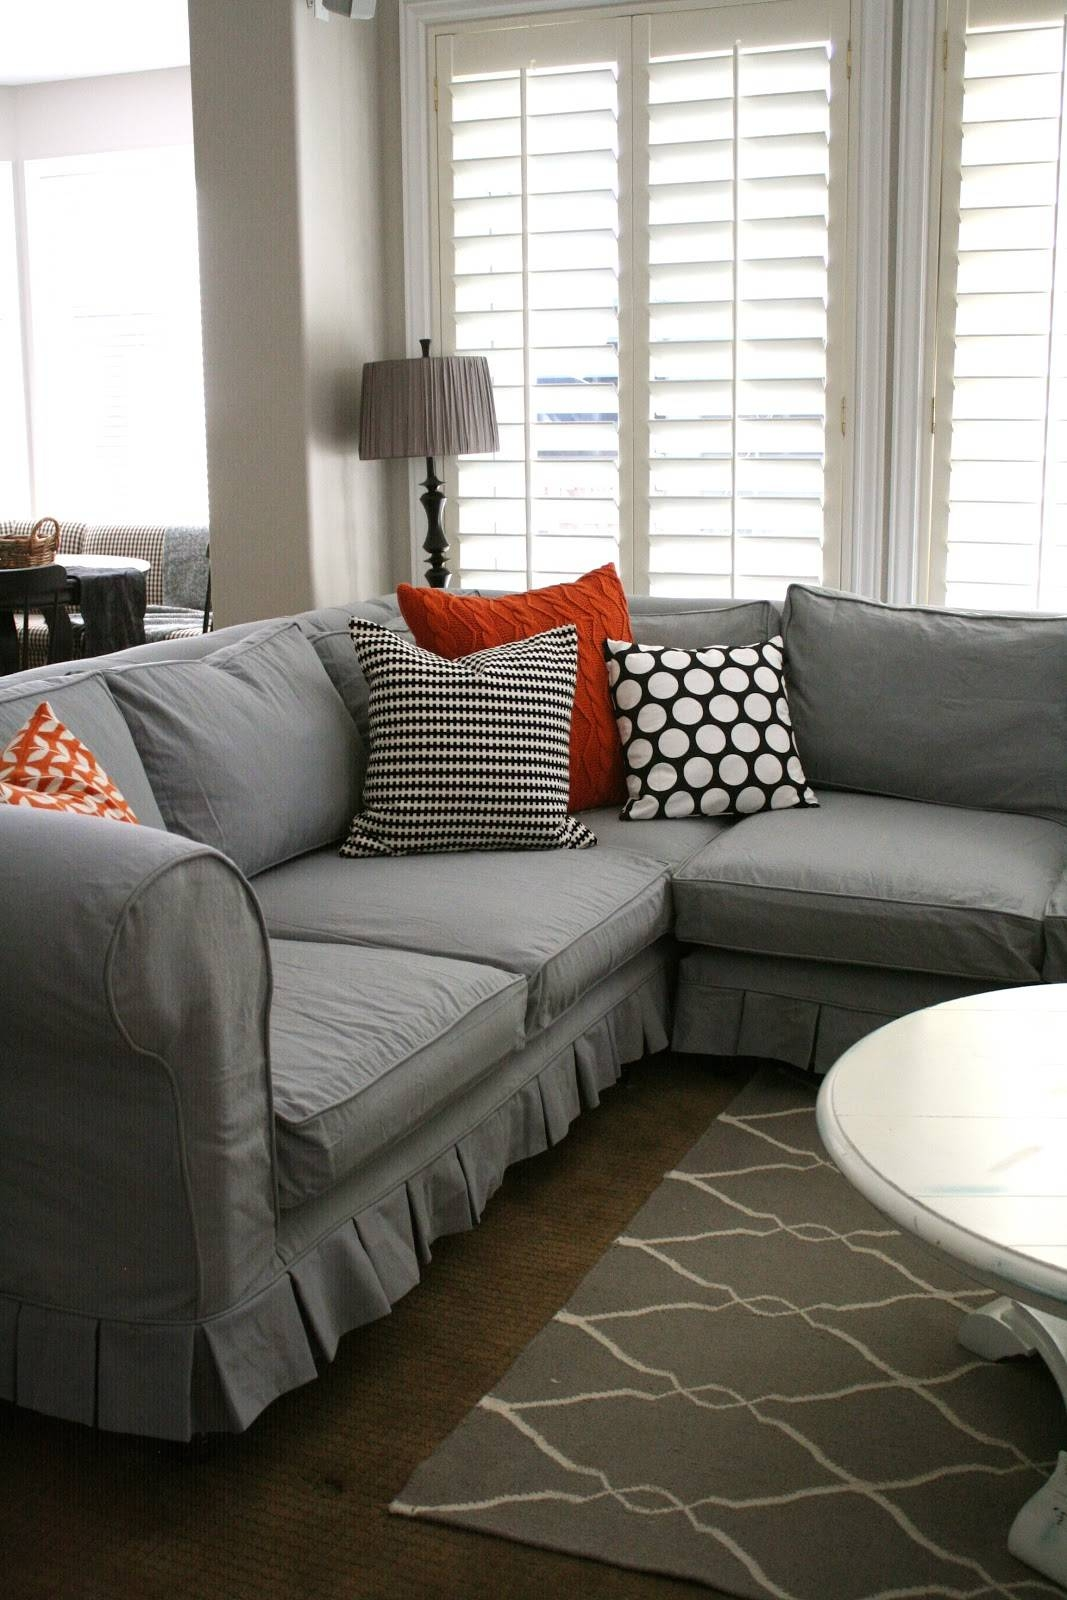 Furniture: Slipcovers For Sectional That Applicable To All Kinds within Slipcovers For Sectional Sofas With Recliners (Image 15 of 30)